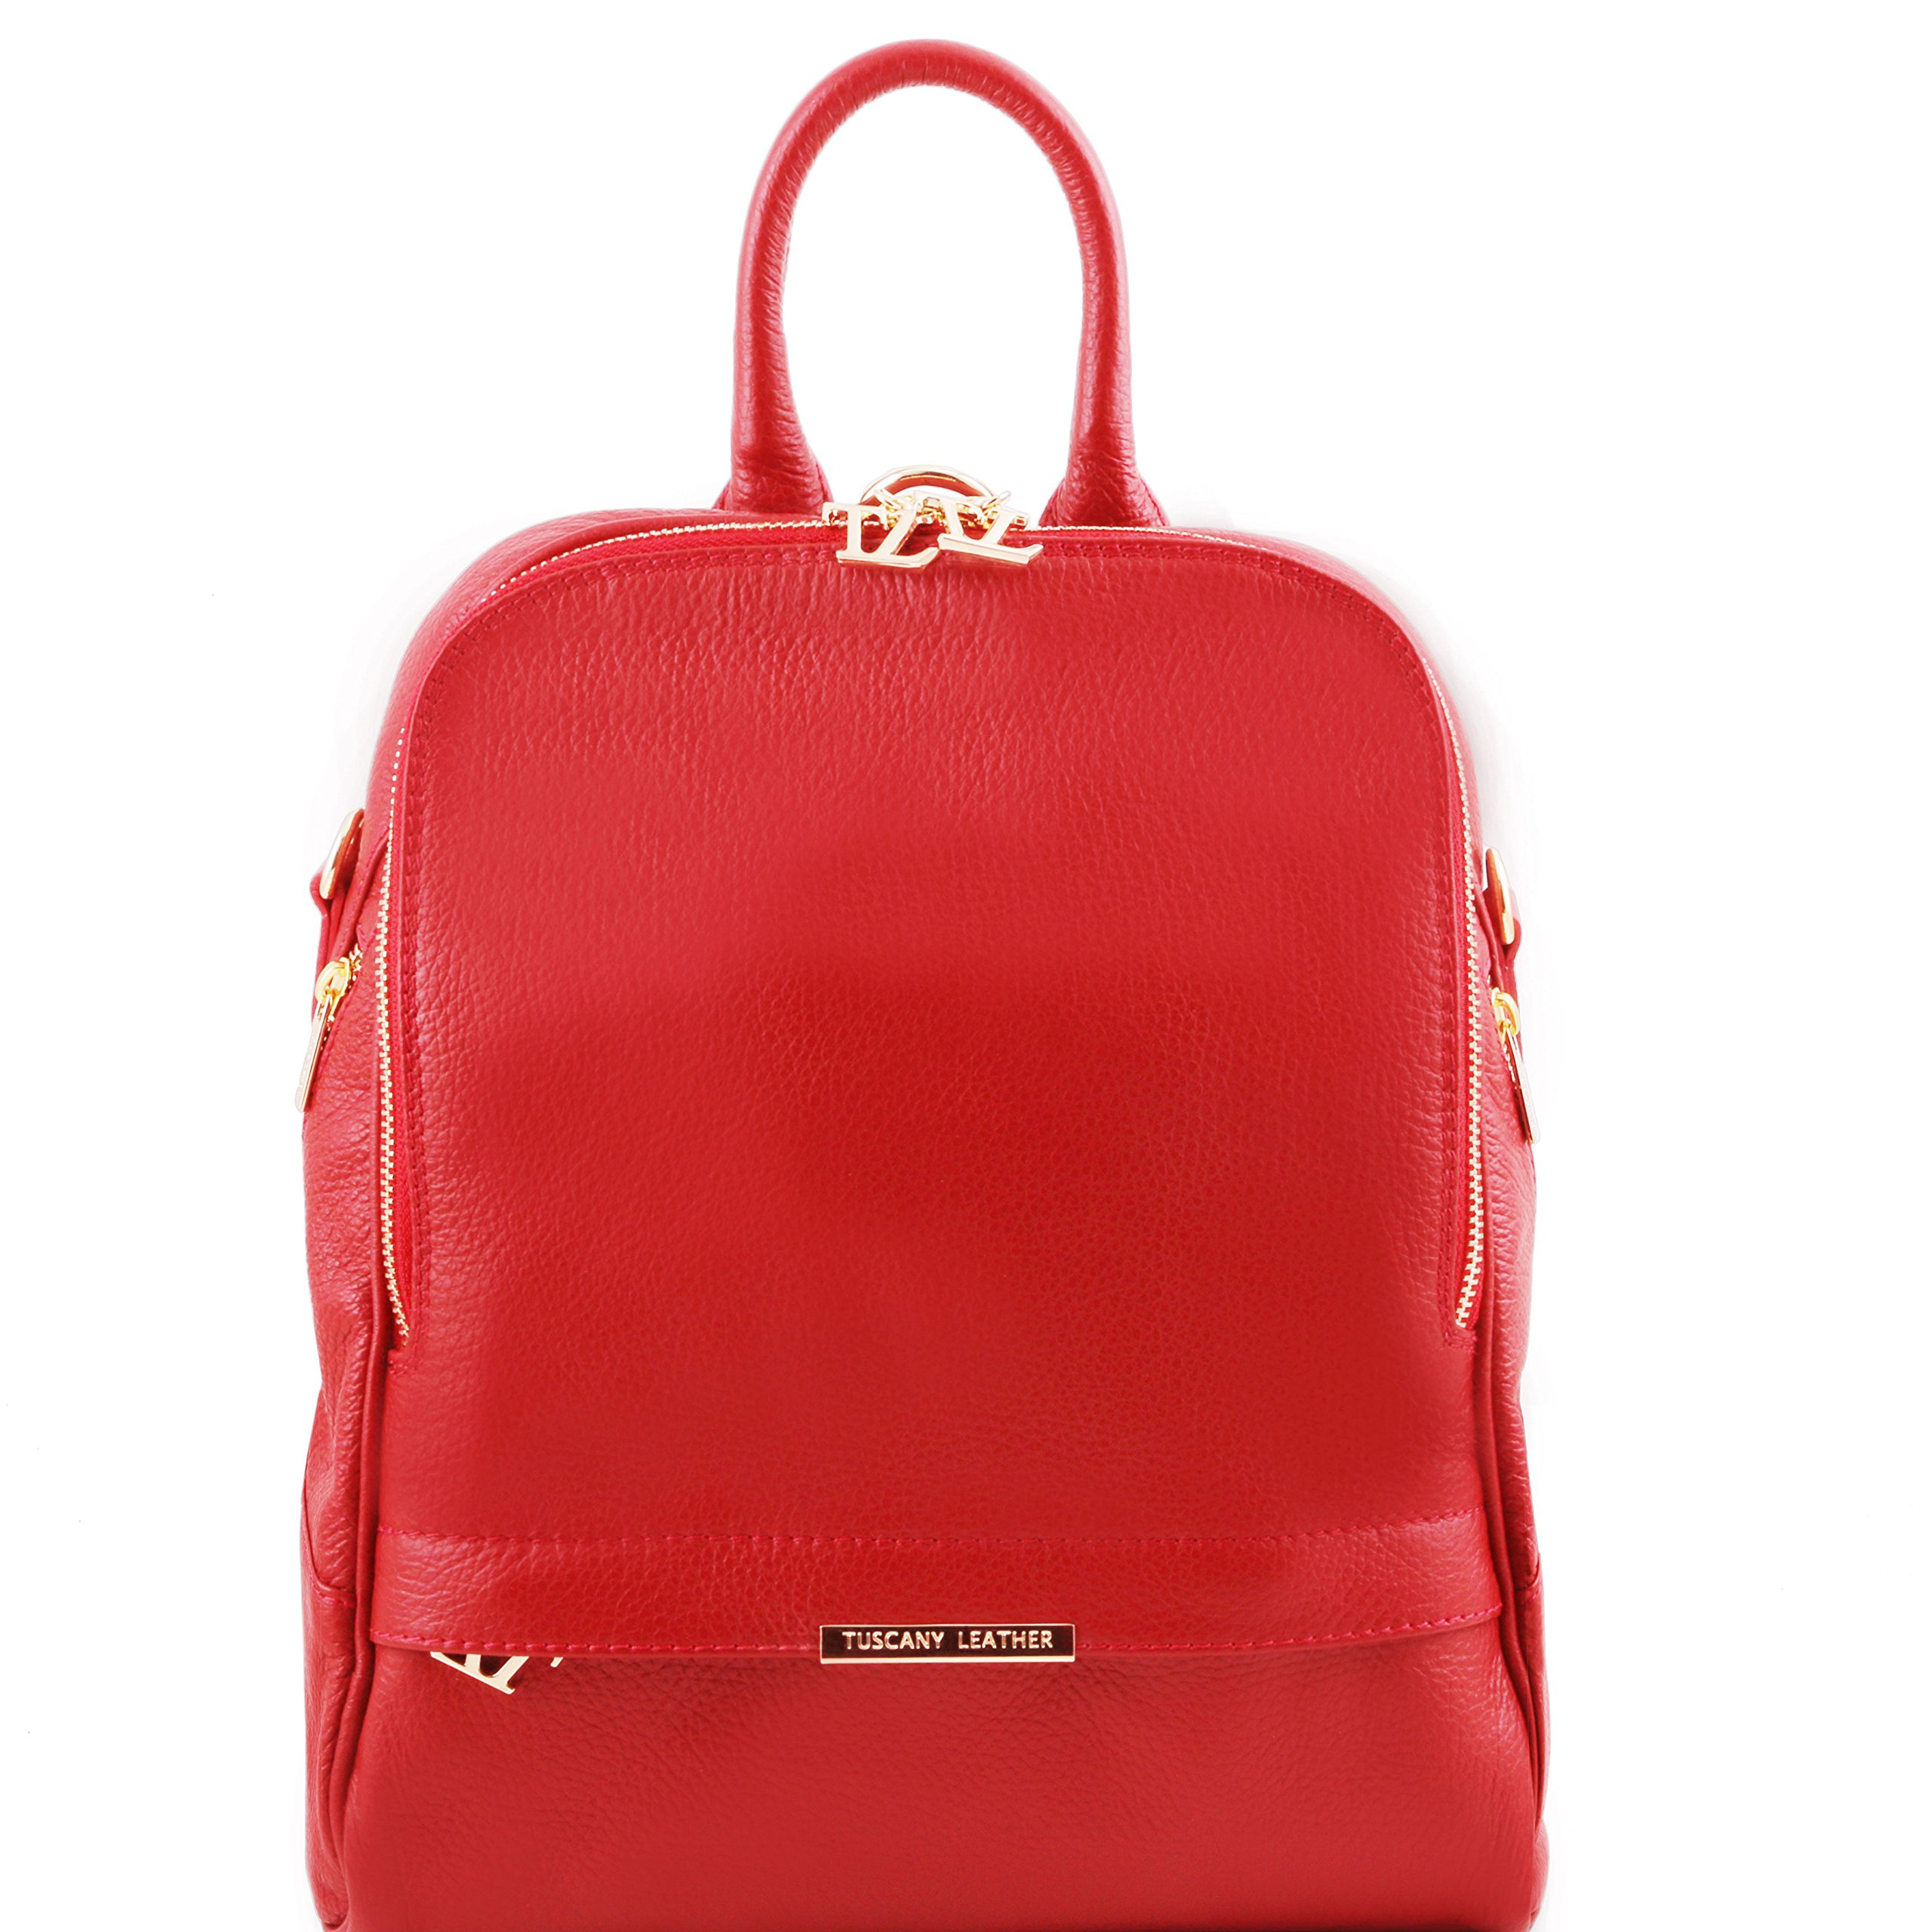 Tuscany Leather TLBag Soft leather backpack for women Red